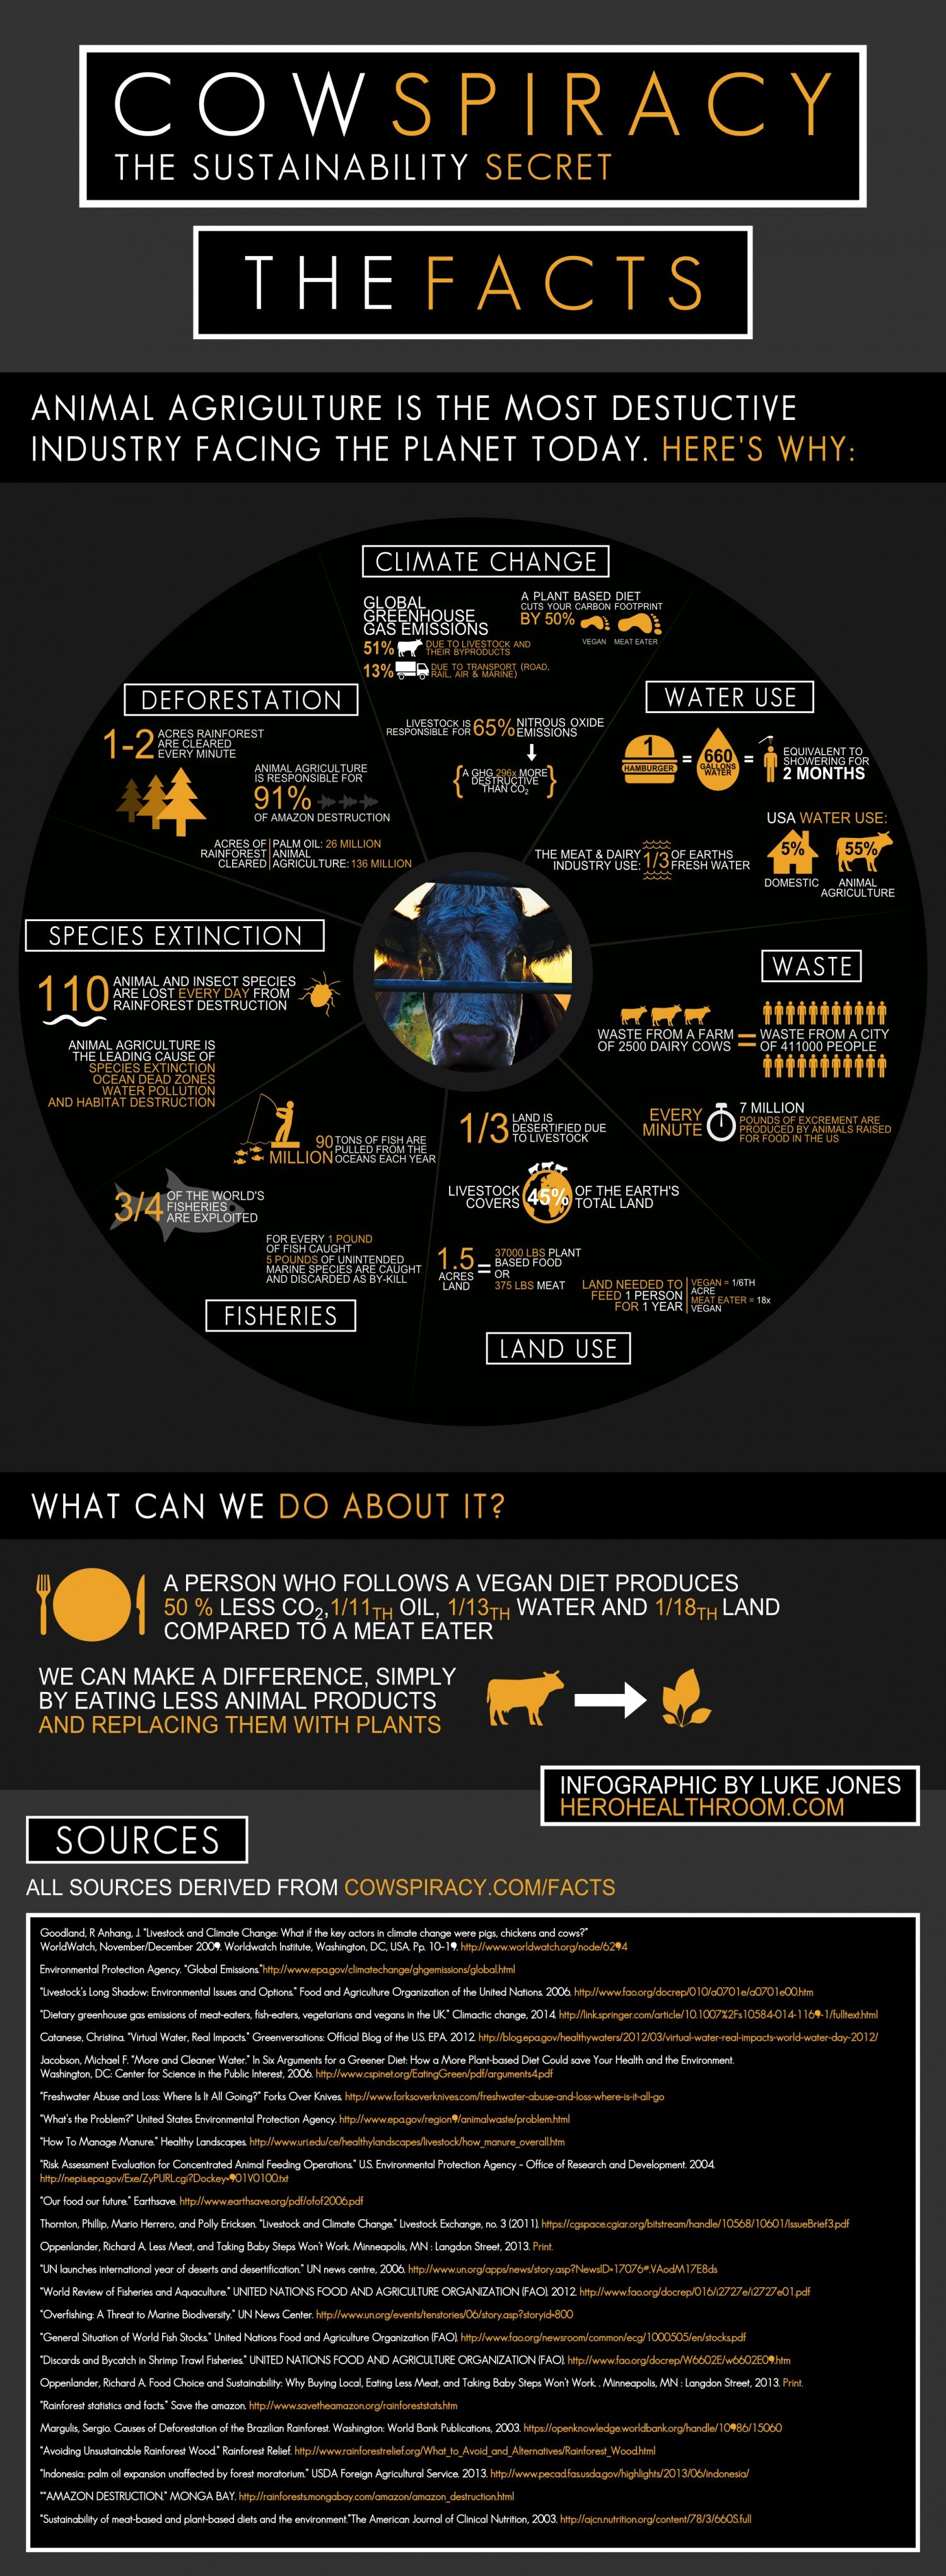 cowspiracy-infographic-why-animal-agriculture-is-the-most-destructive-industry